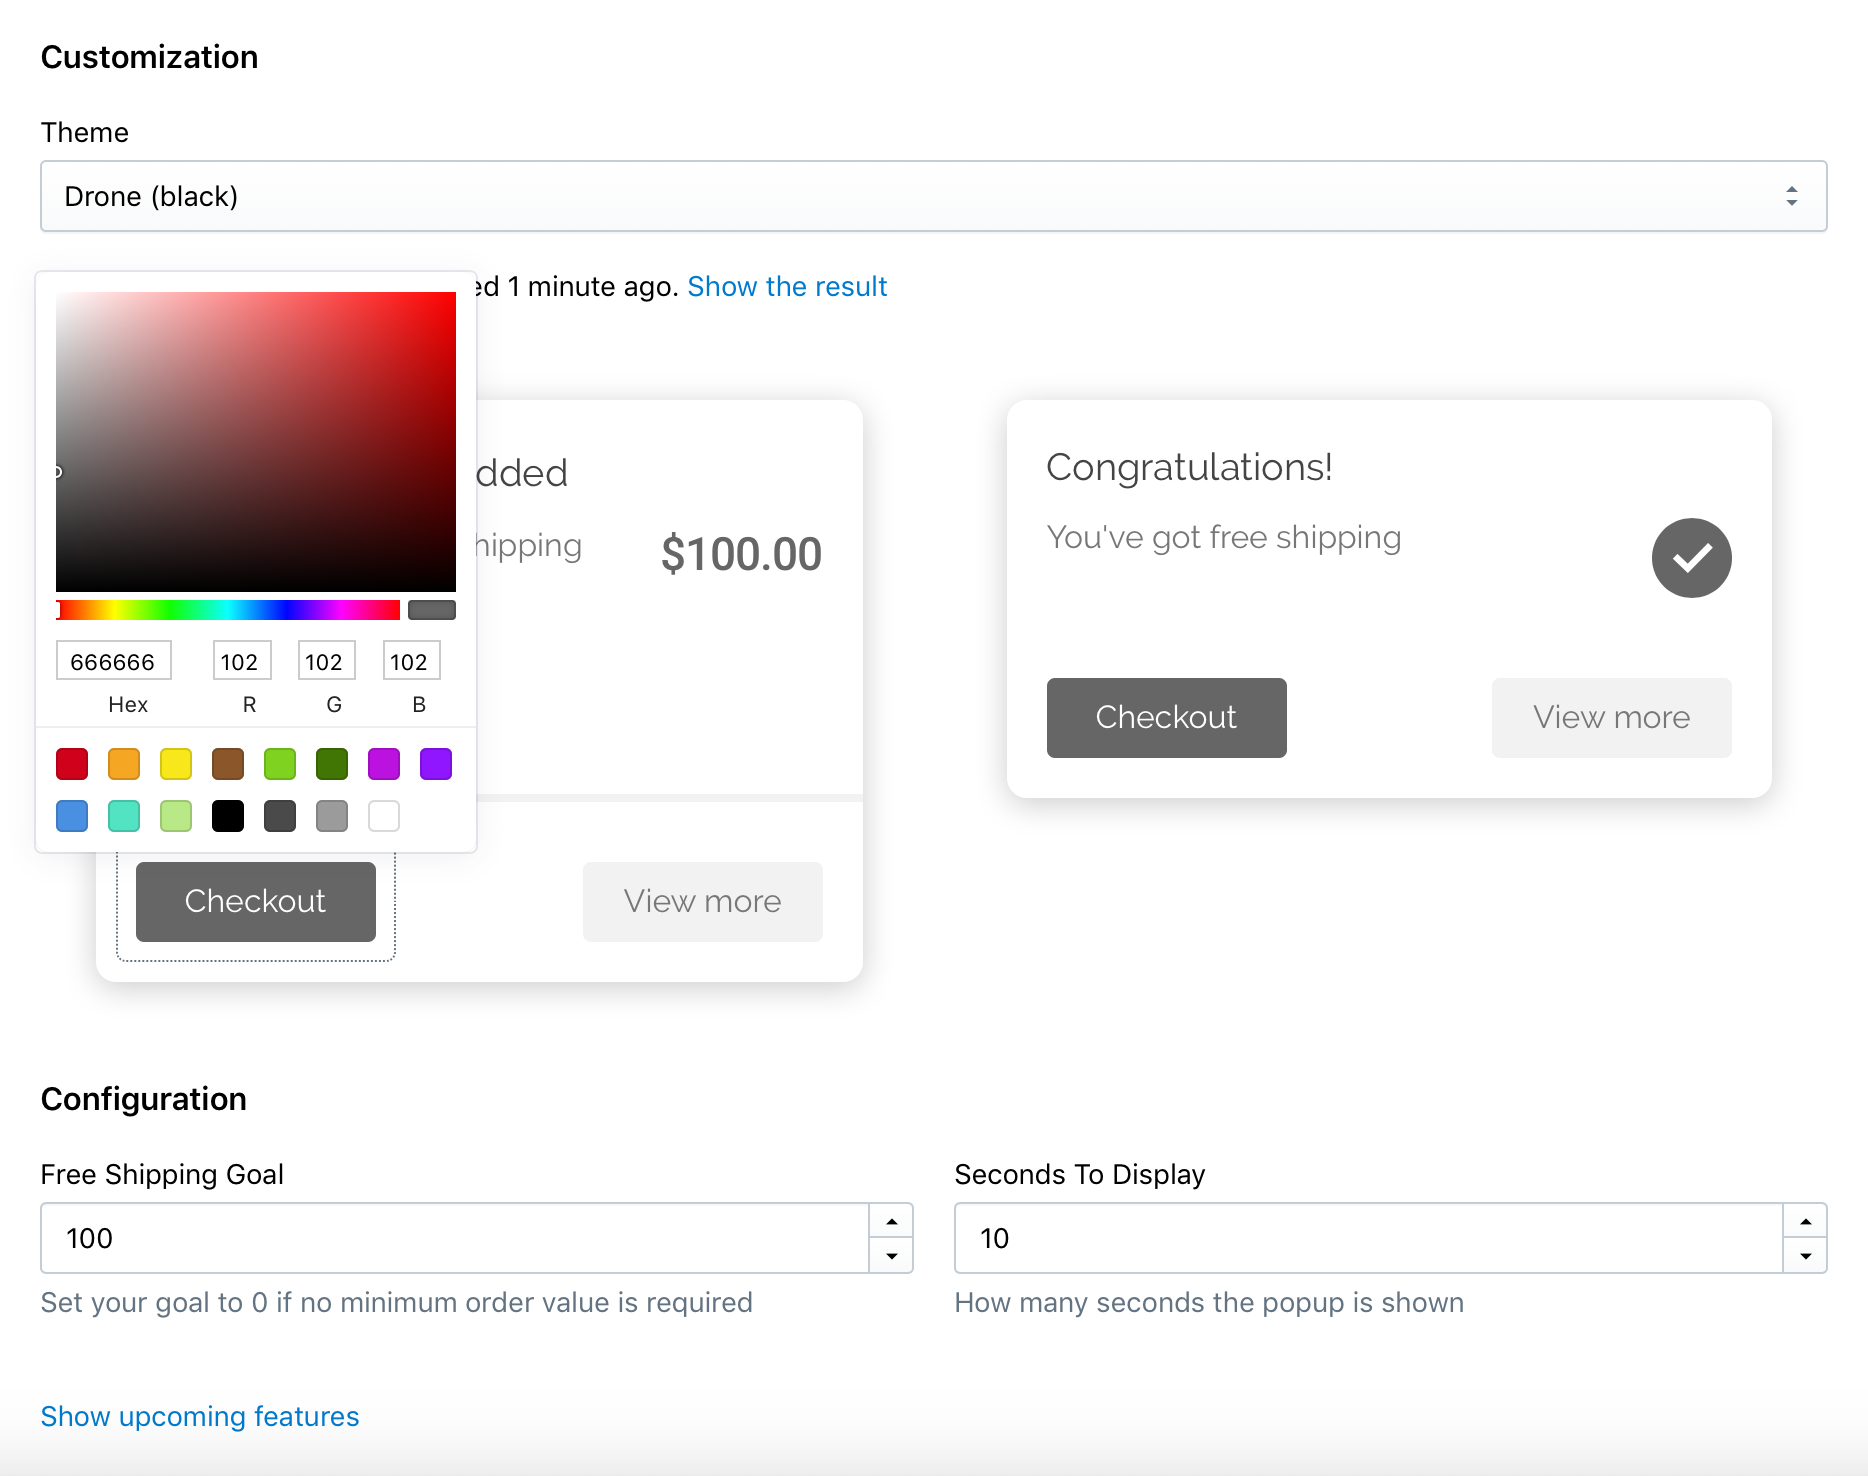 Change a color of the checkout button on your first popup screen